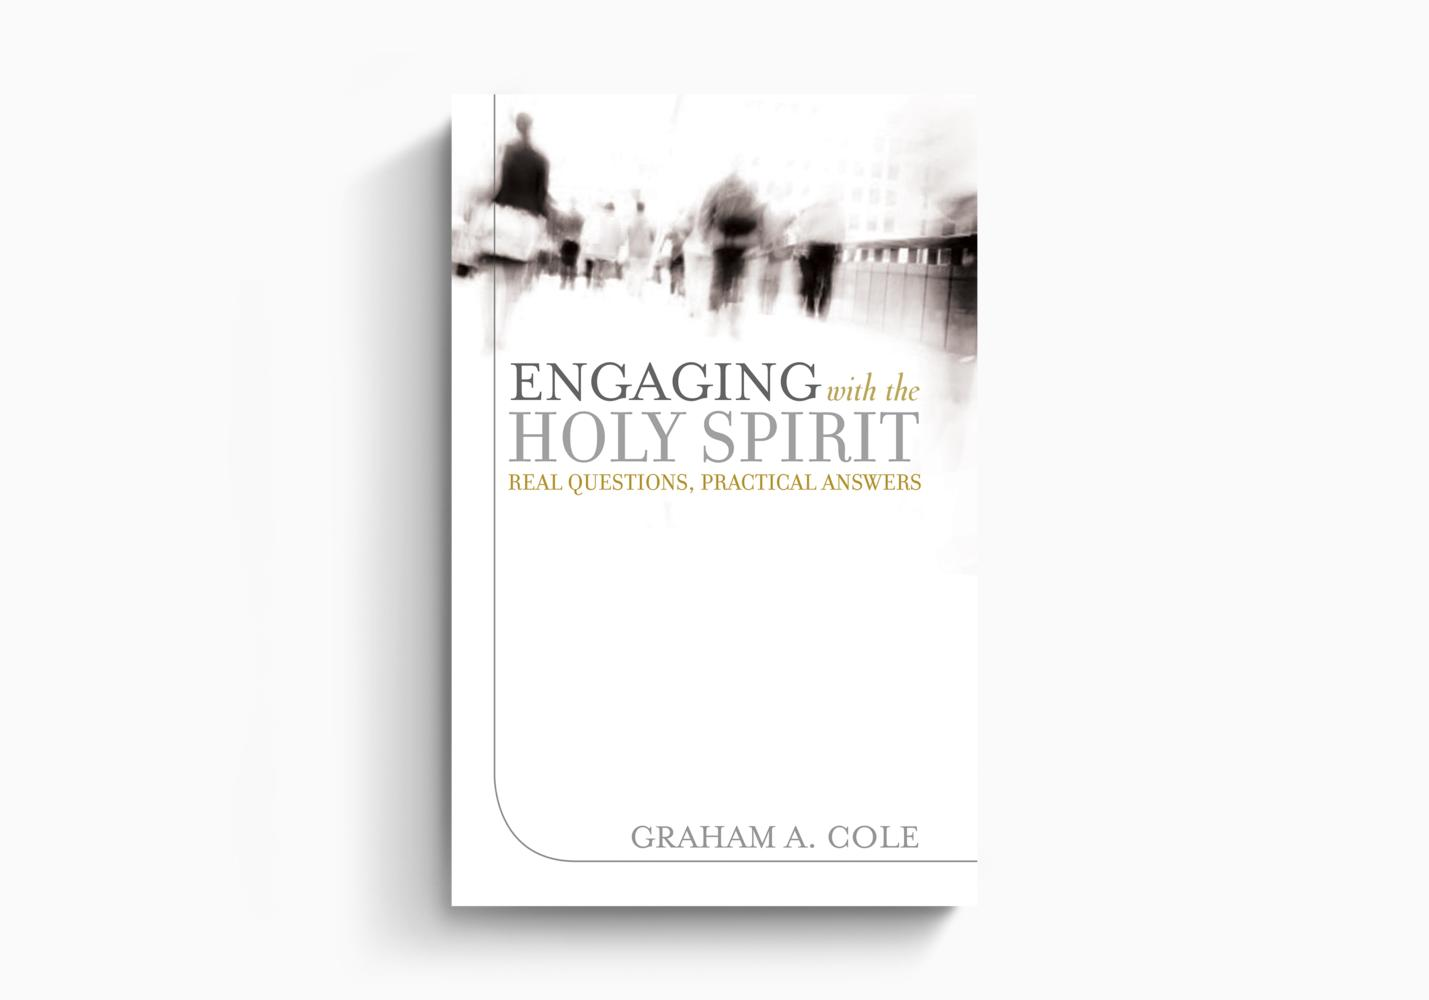 Engaging with the Holy Spirit